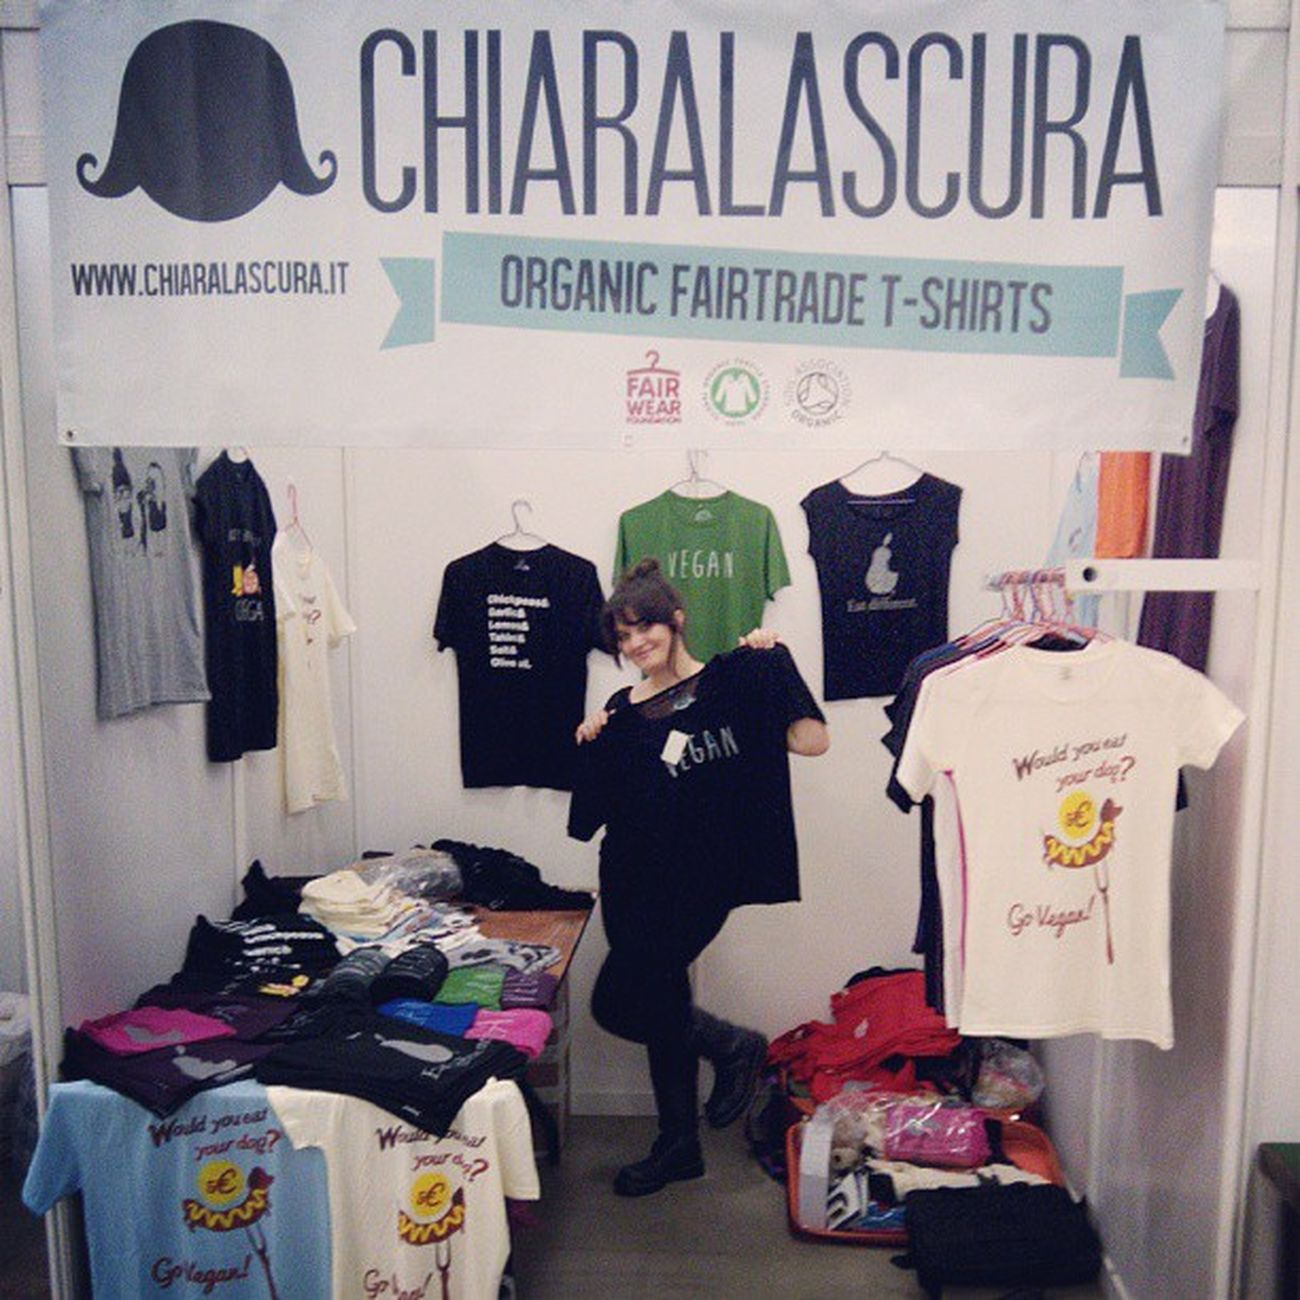 Chiaralascura at #vegfestuk #London. Stall G16. #vegan #vegantshirts #veganfashion London Vegan Vegfest Vegantshirts Veganfashion Vegfestuk Vegfestlondon